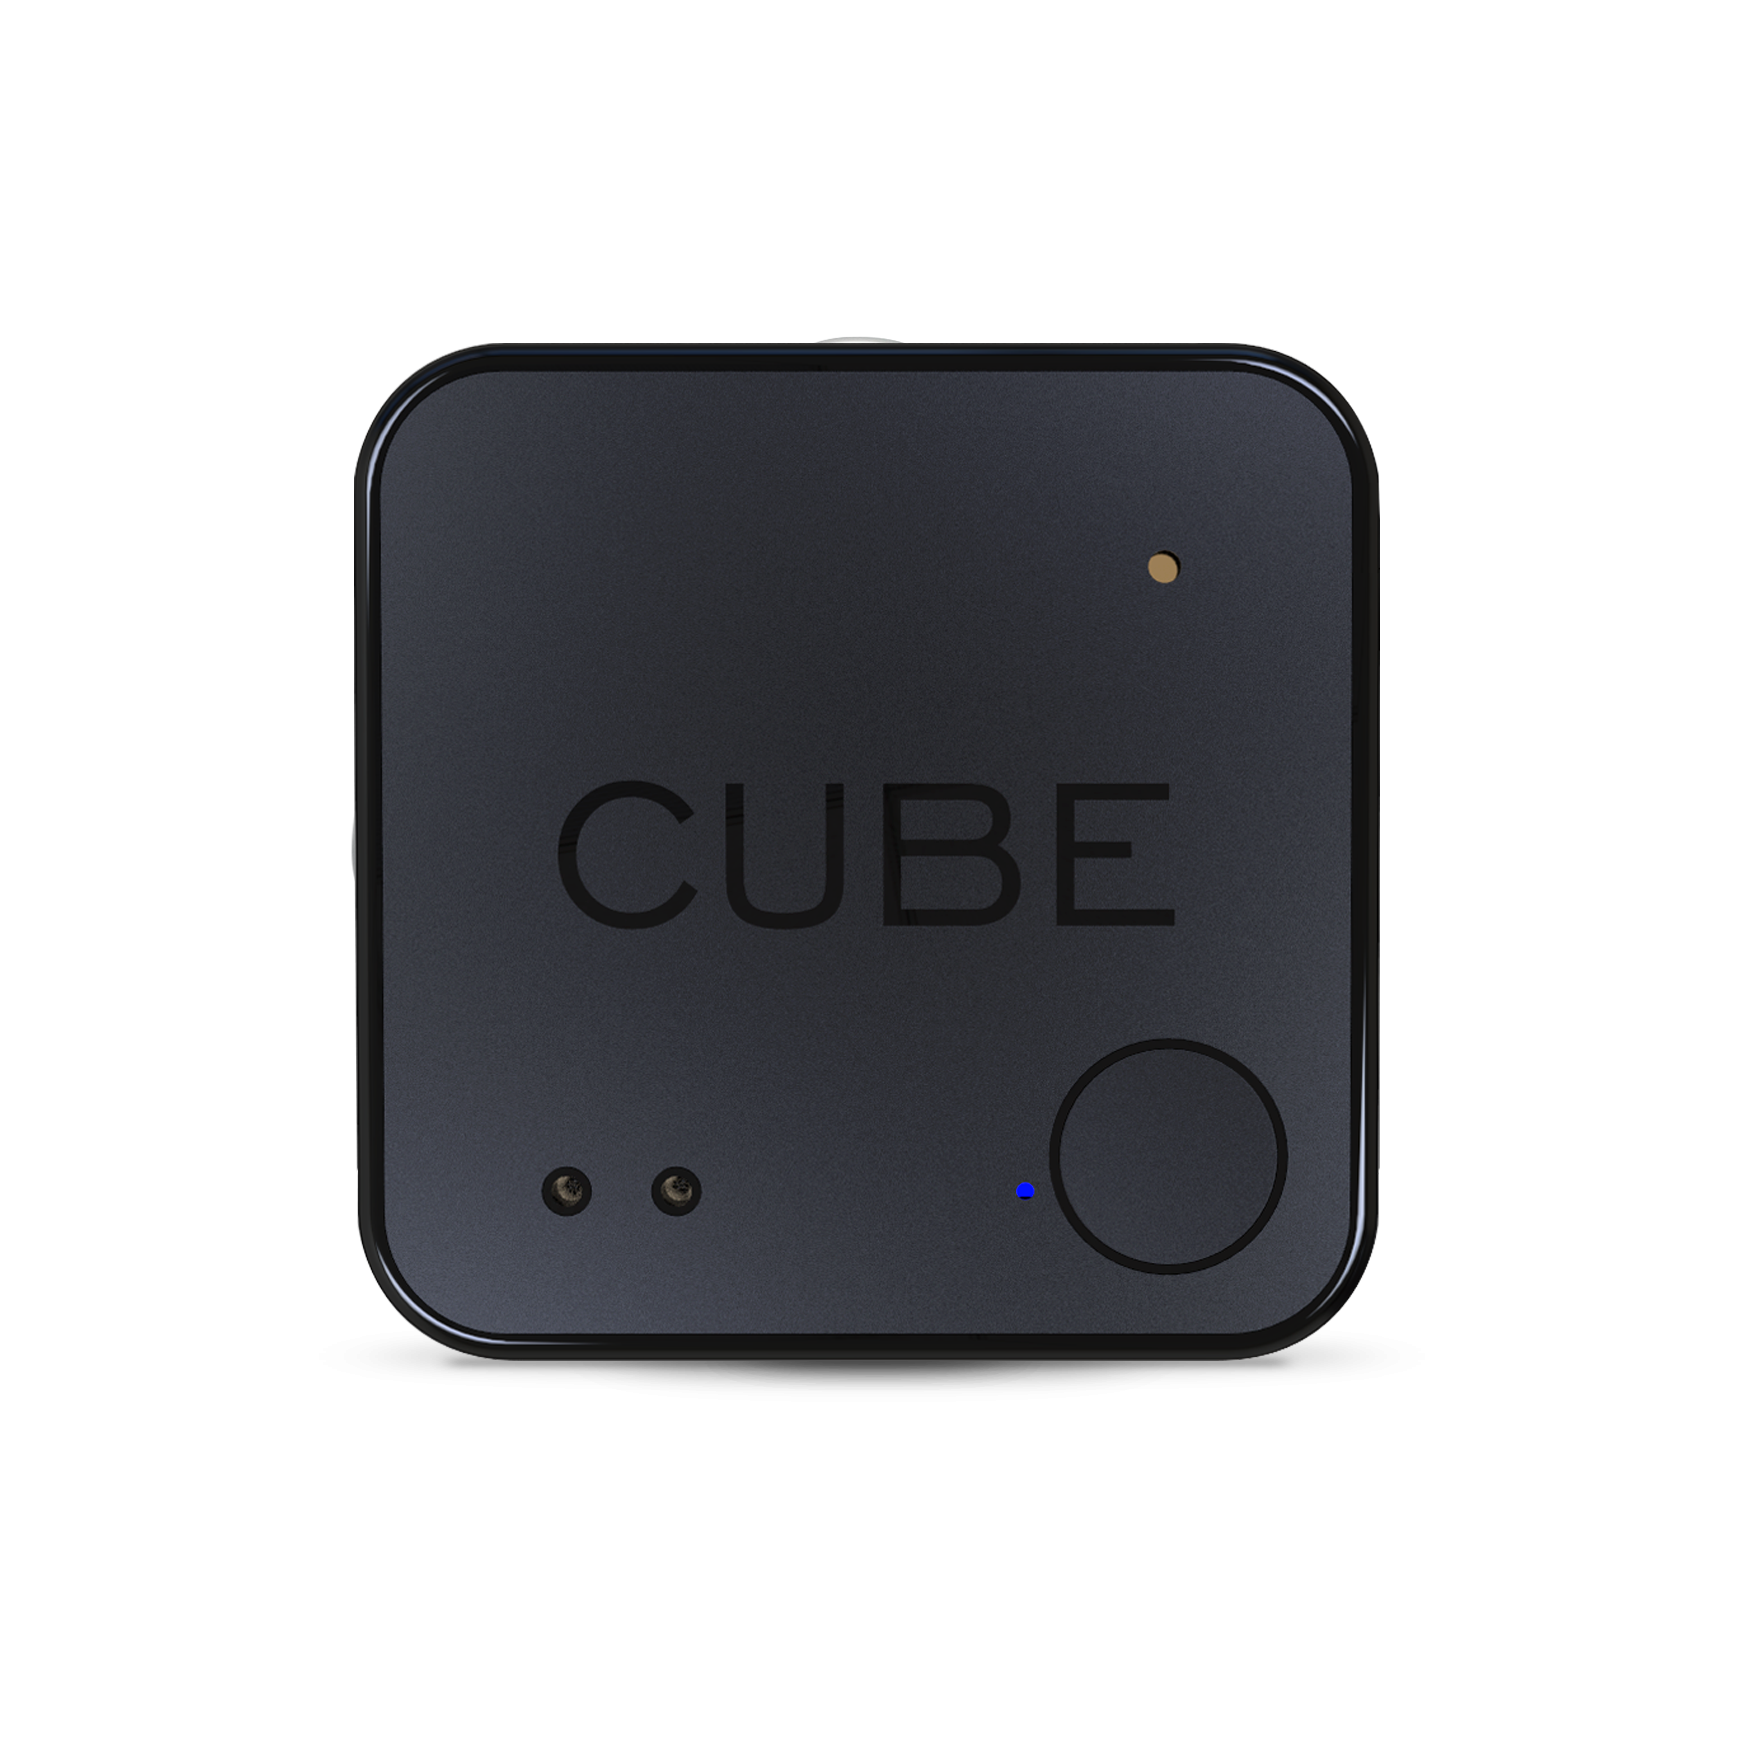 Cube Shadow - Shadow is our ultra thin bluetooth tracker. Place it in your wallet, stick it to your tablet, or laptop.